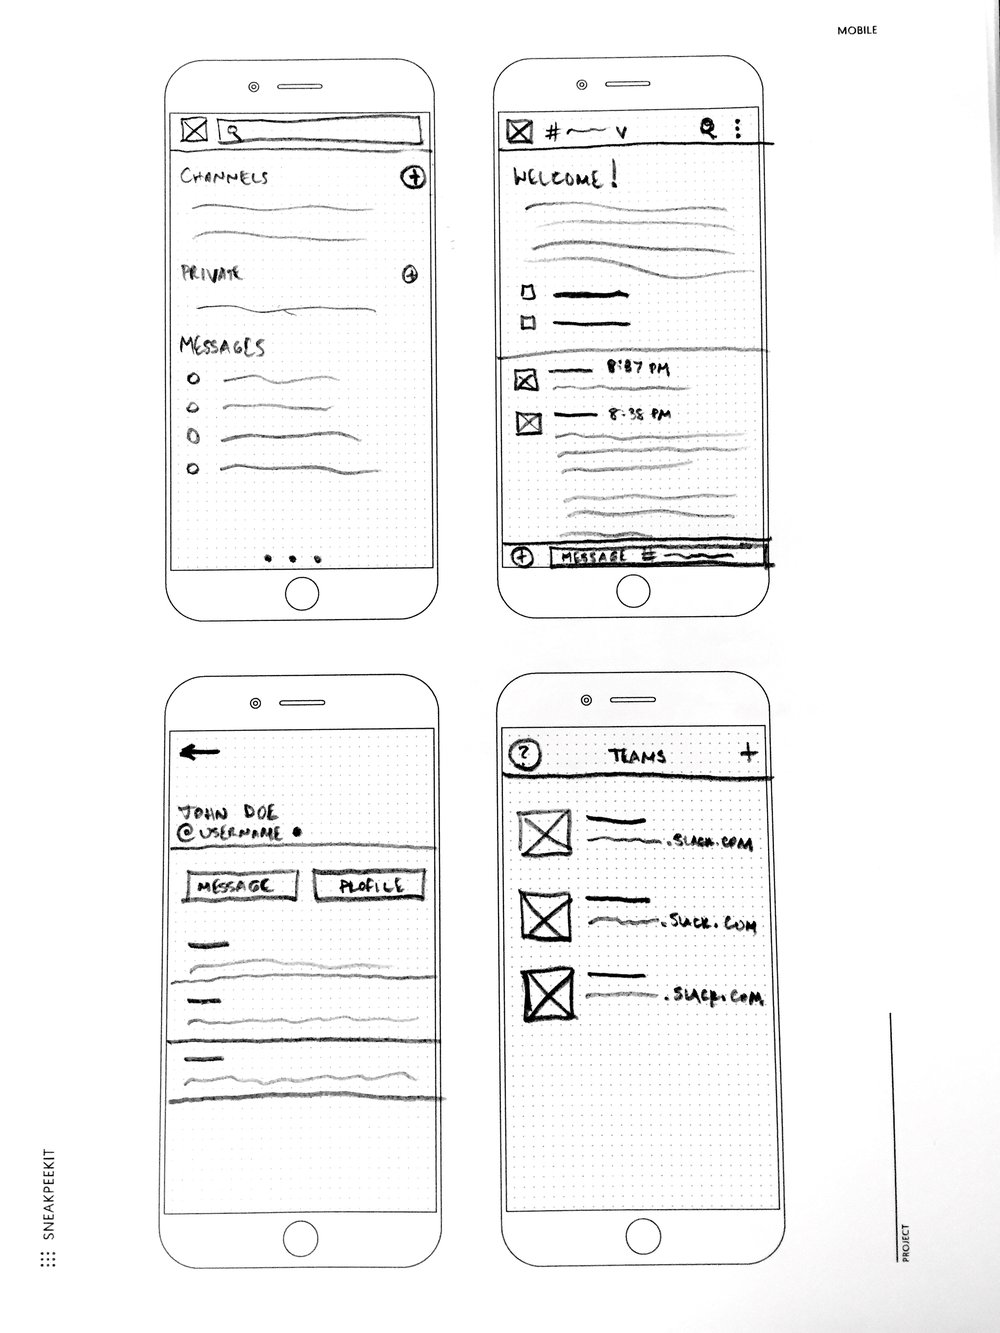 A low-fidelity paper sketch of the Slack mobile application. Sharing ideas early and often is the key to designing a stellar user experience. An iterative approach allows rapid refinement.